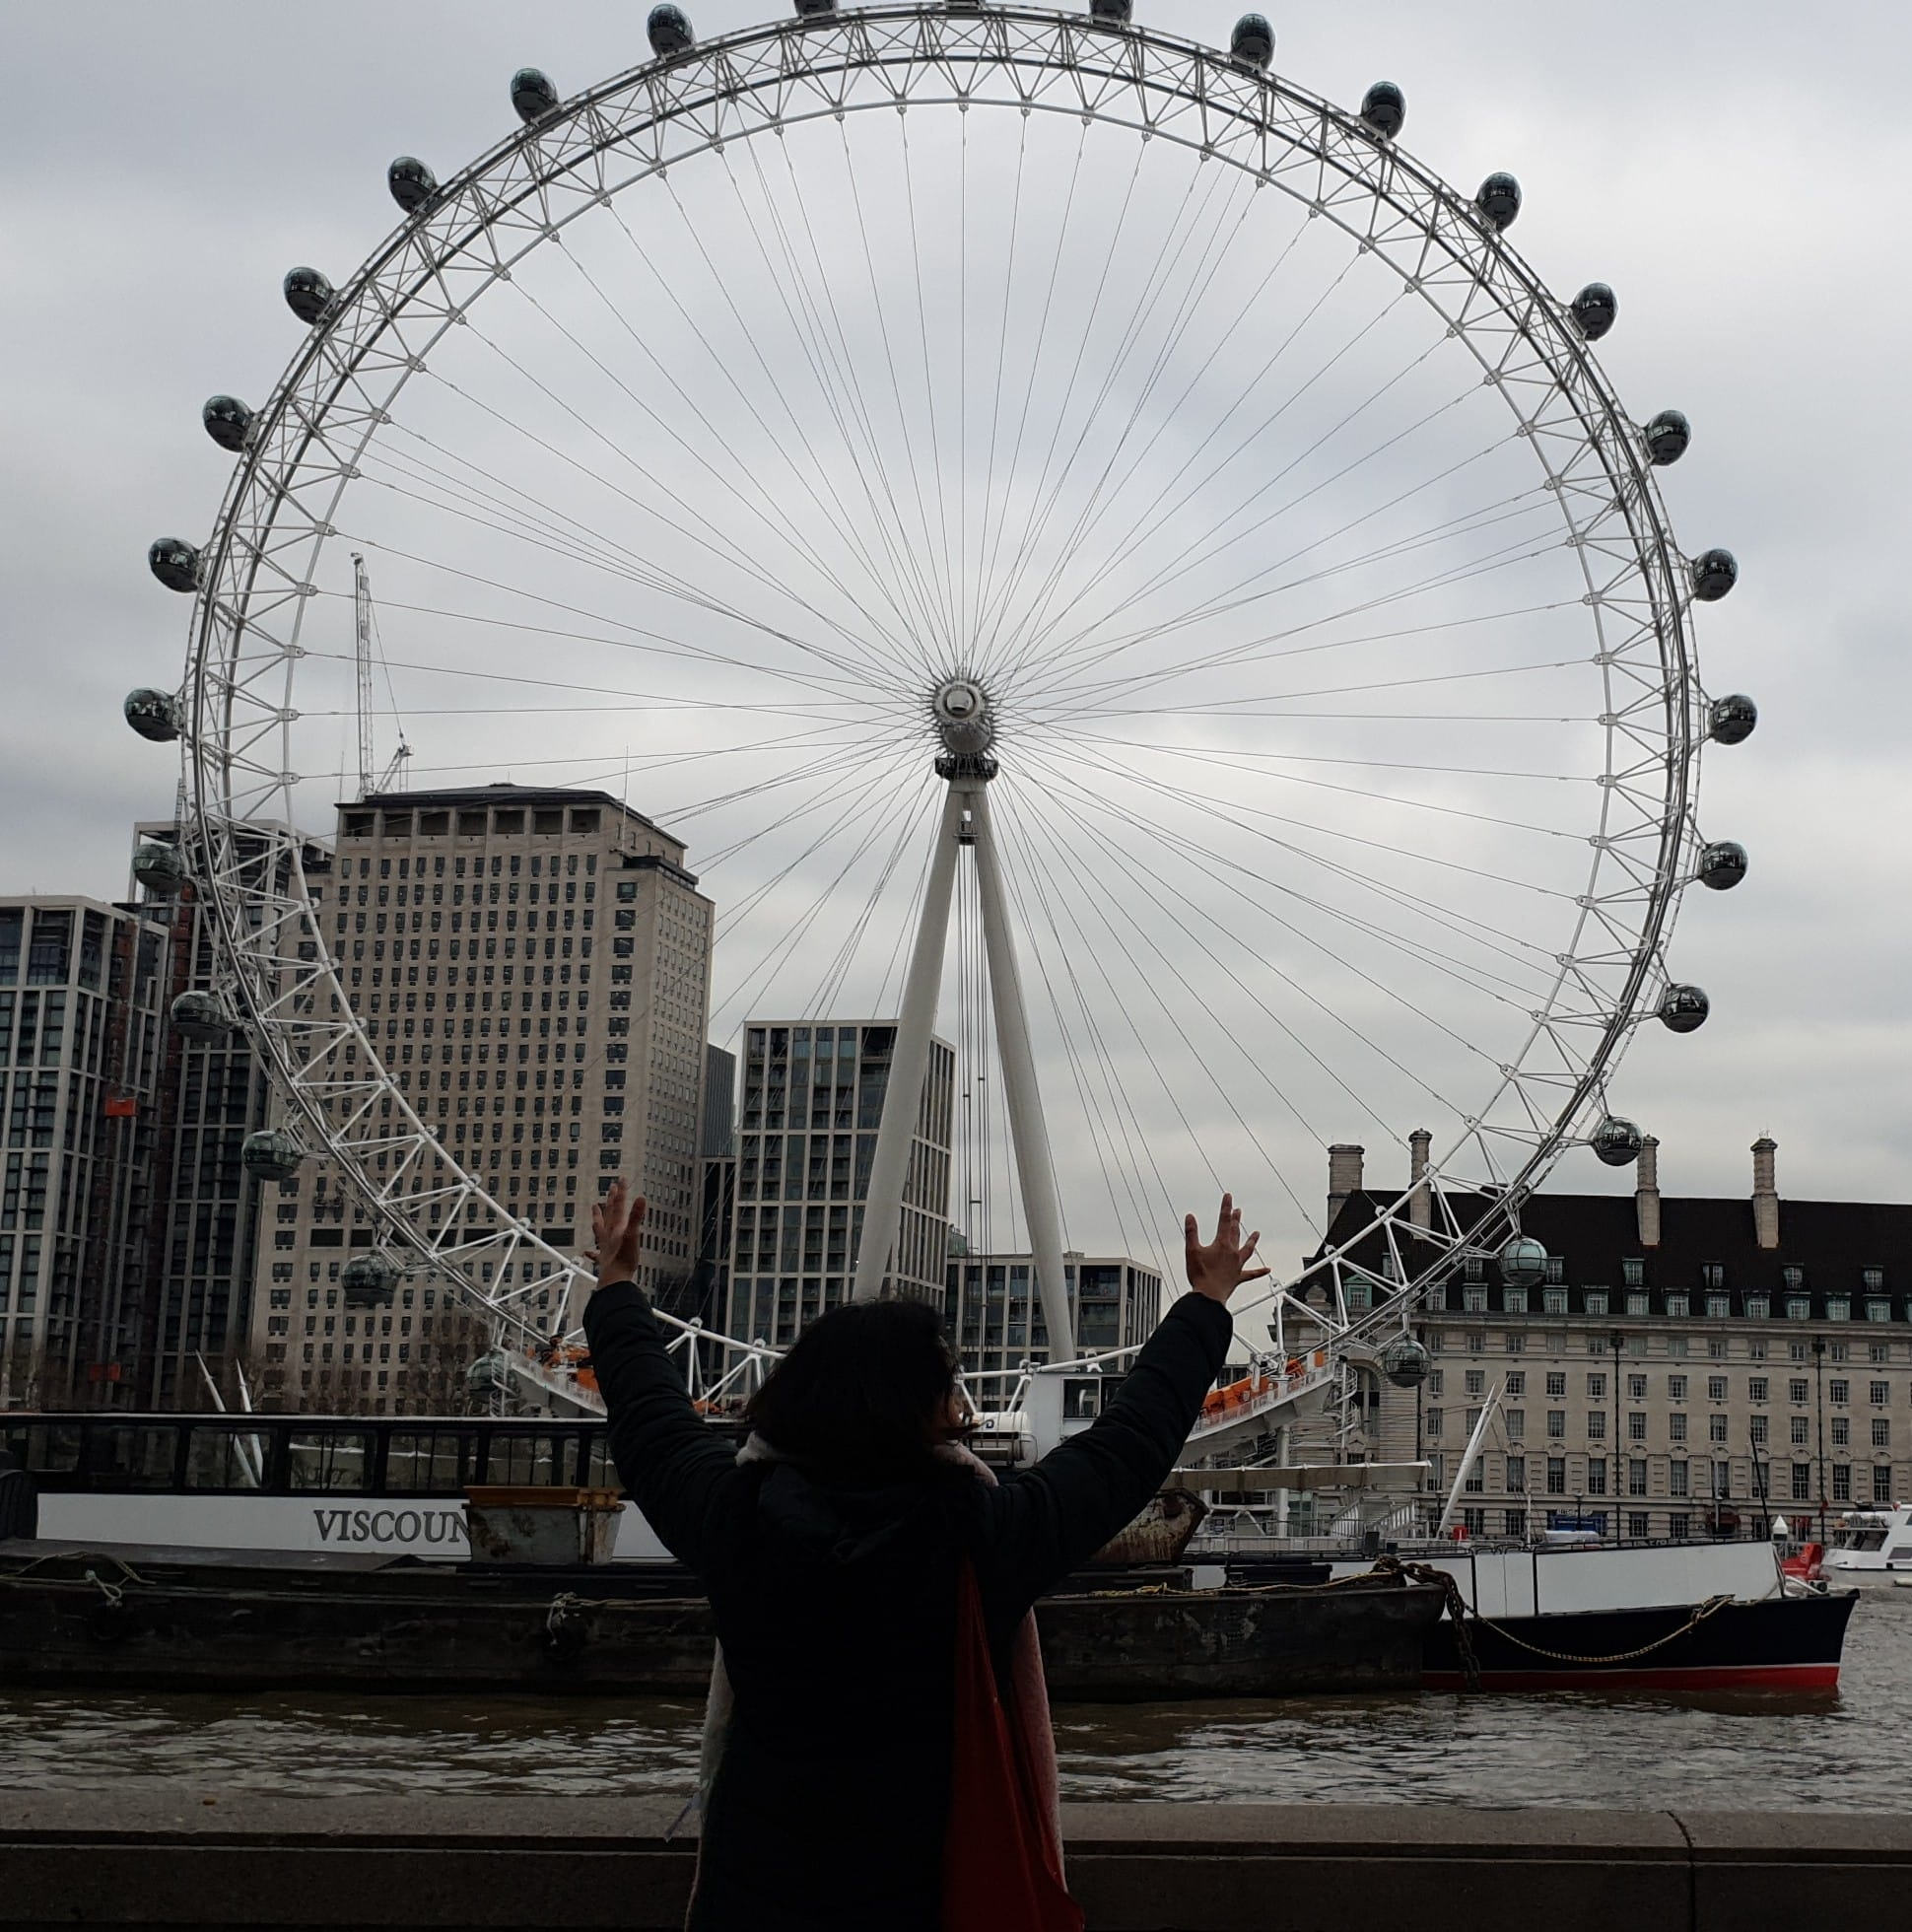 A girl in front of the London Eye